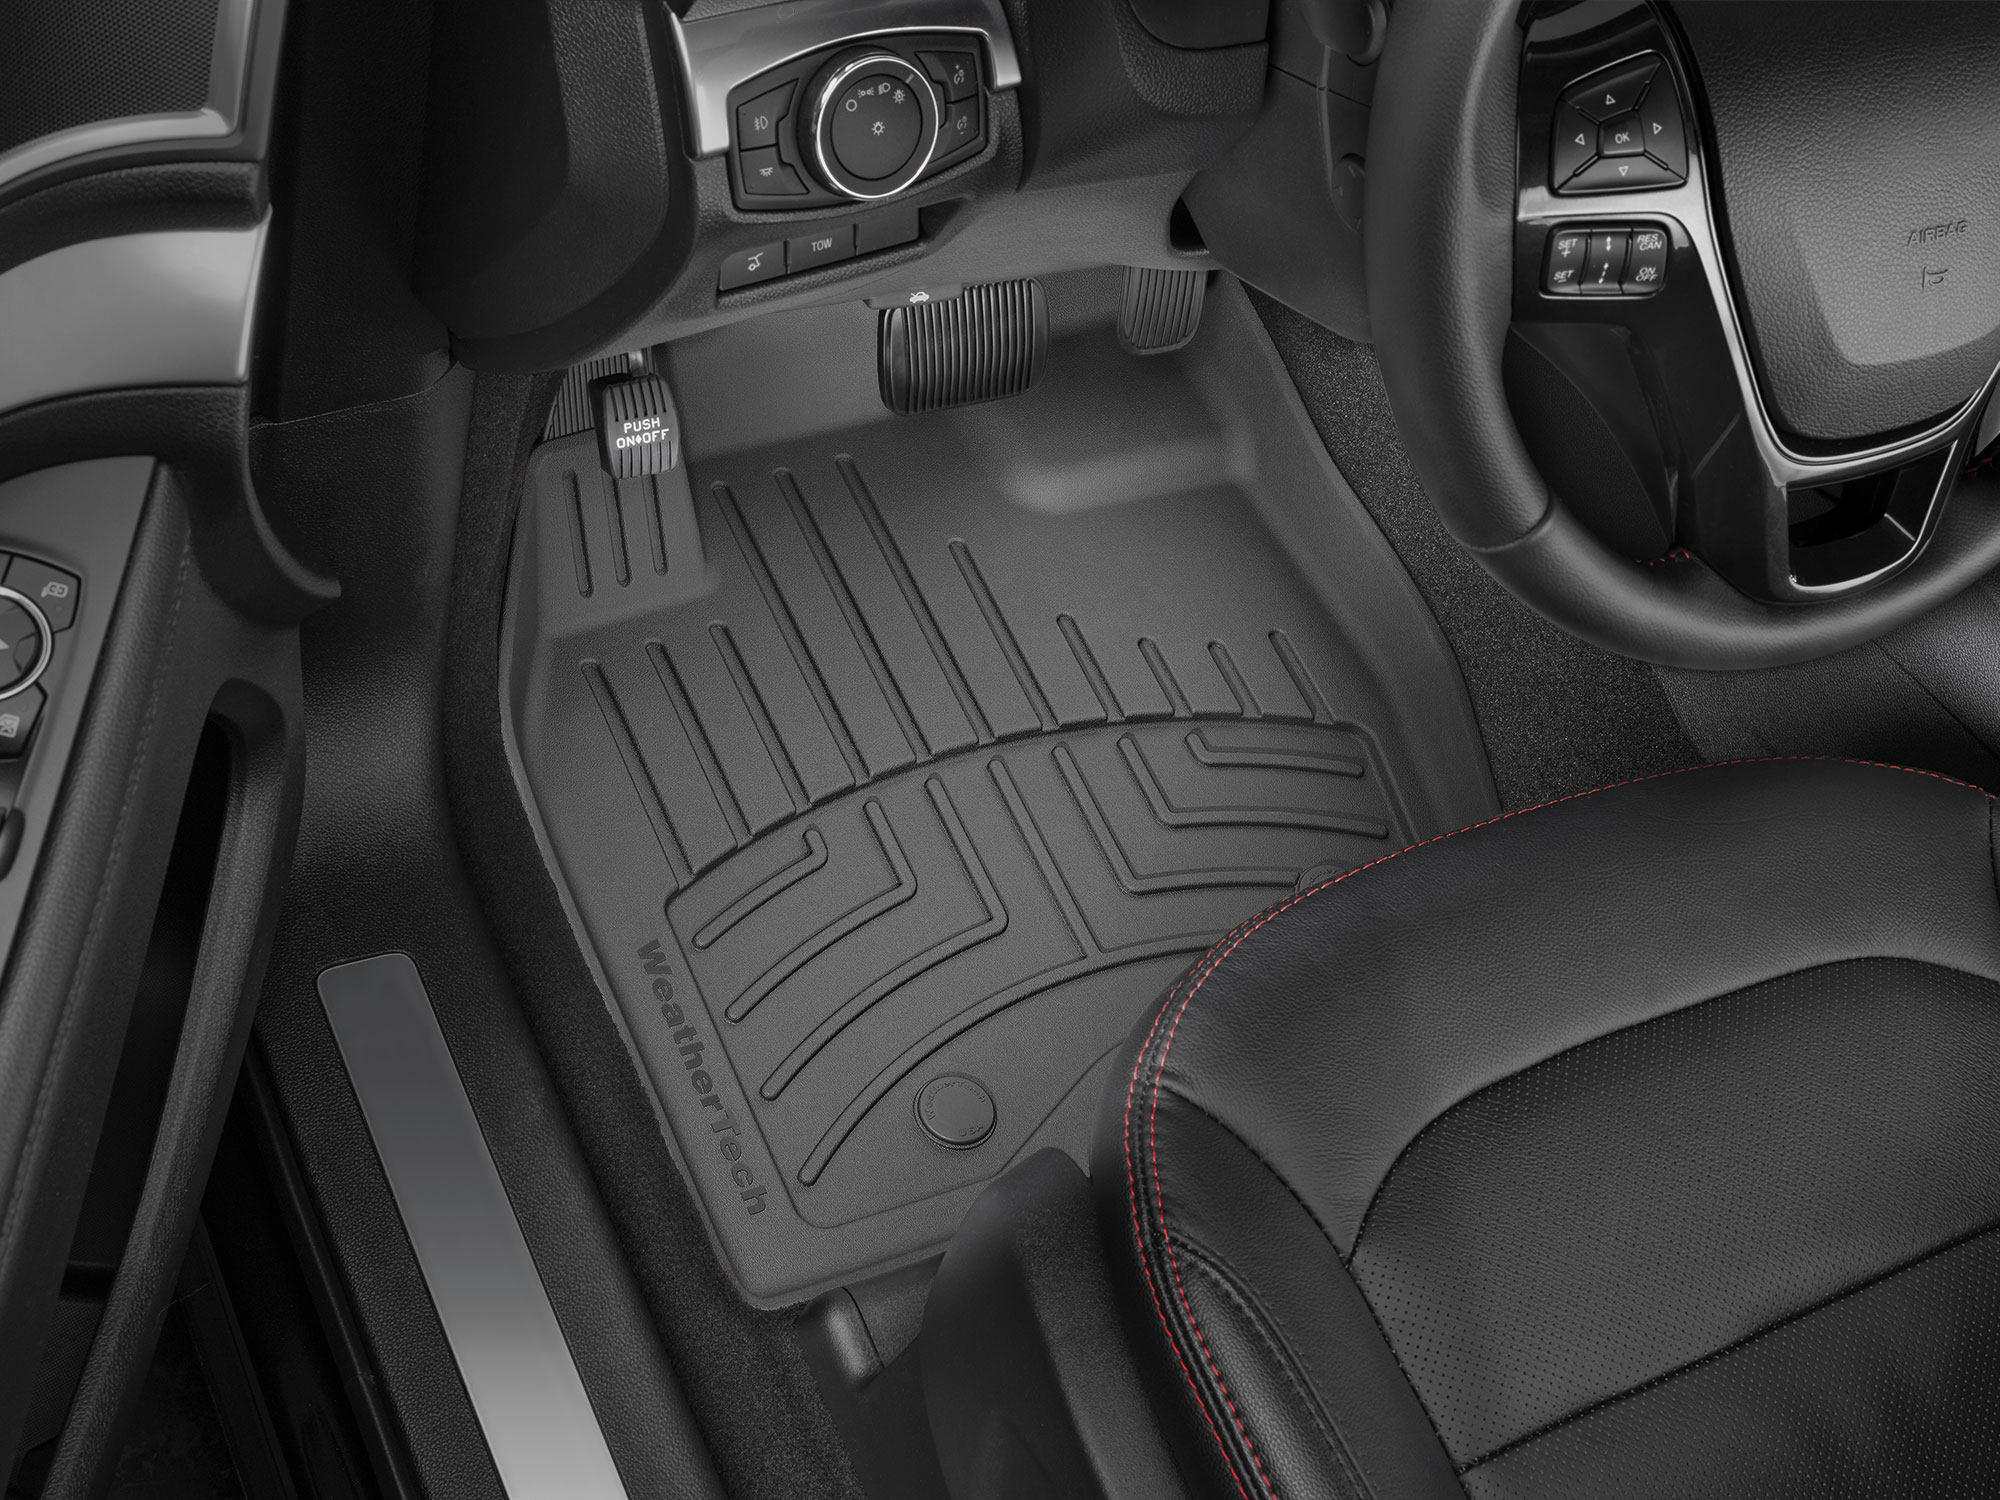 Black WeatherTech FloorLiner HP covering the driver's side footwell of a vehicle.